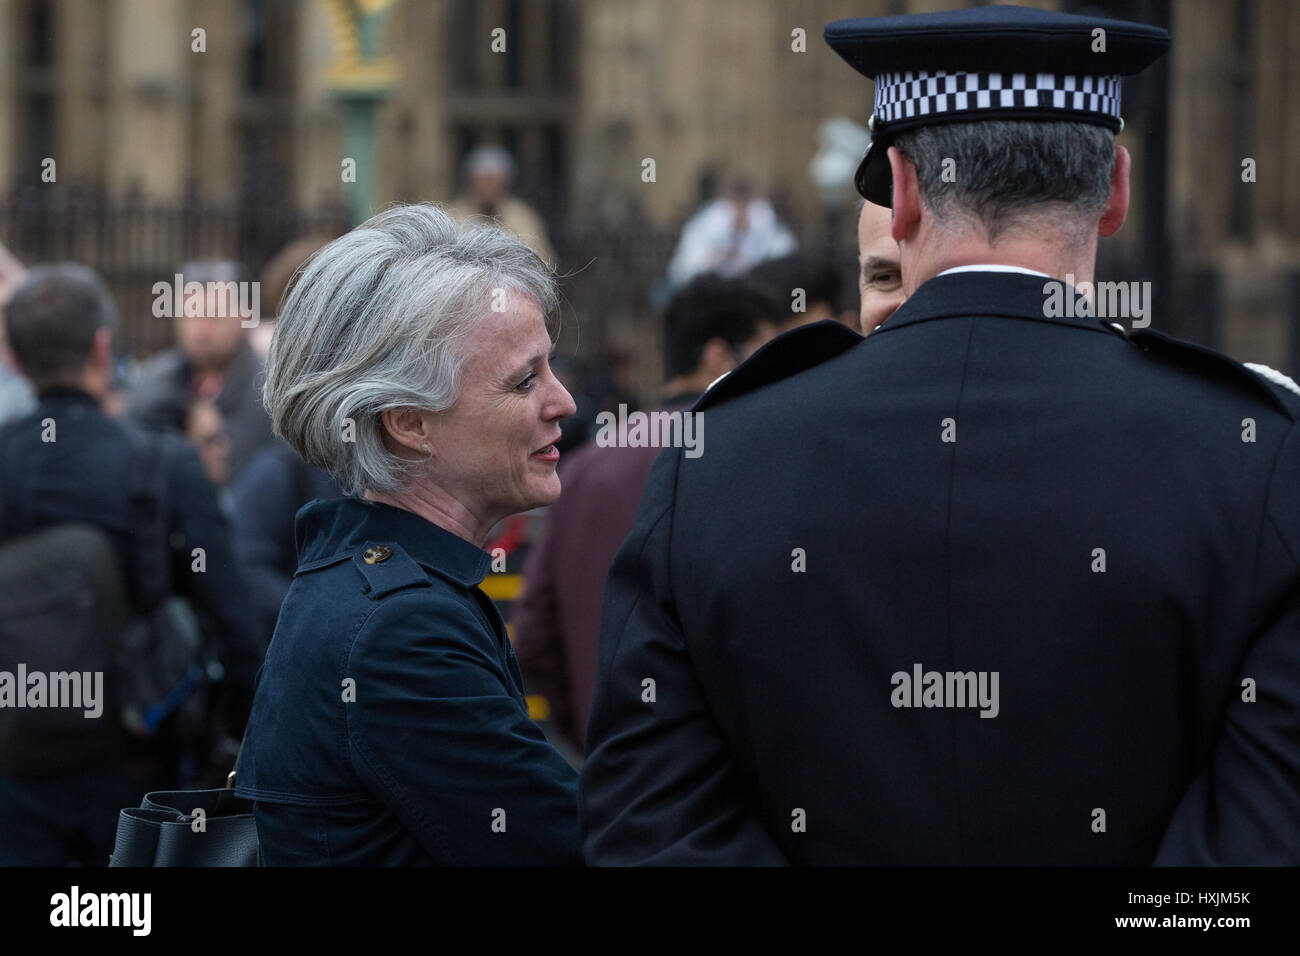 London, UK. 29th March, 2017. Sophie Linden, London Deputy Mayor for Policing and Crime, speaks to a police officer - Stock Image